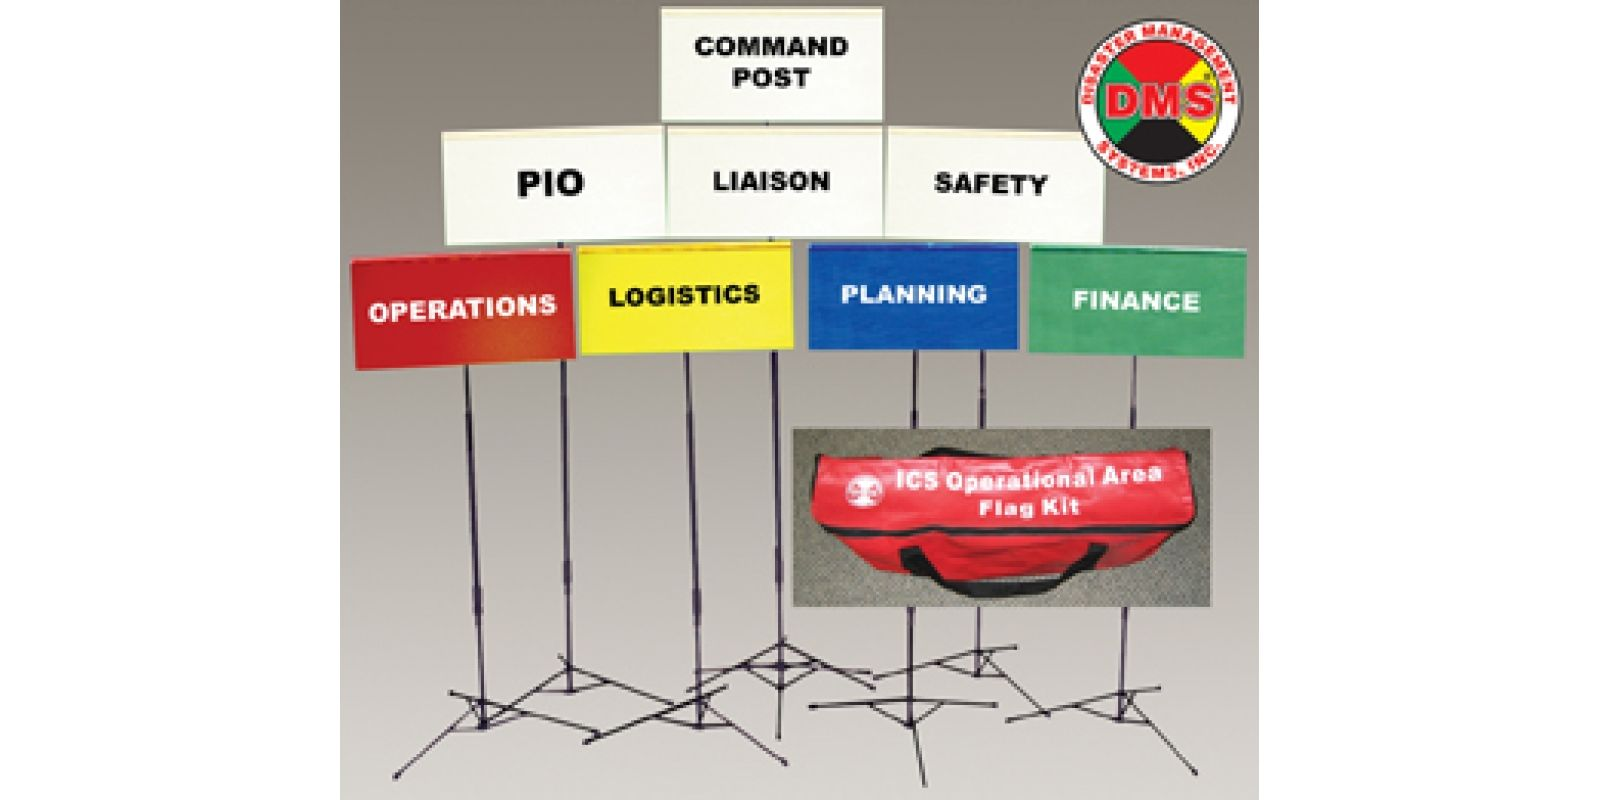 Incident Command System Flag Kit It Is Set Forth In The National Incident Management System